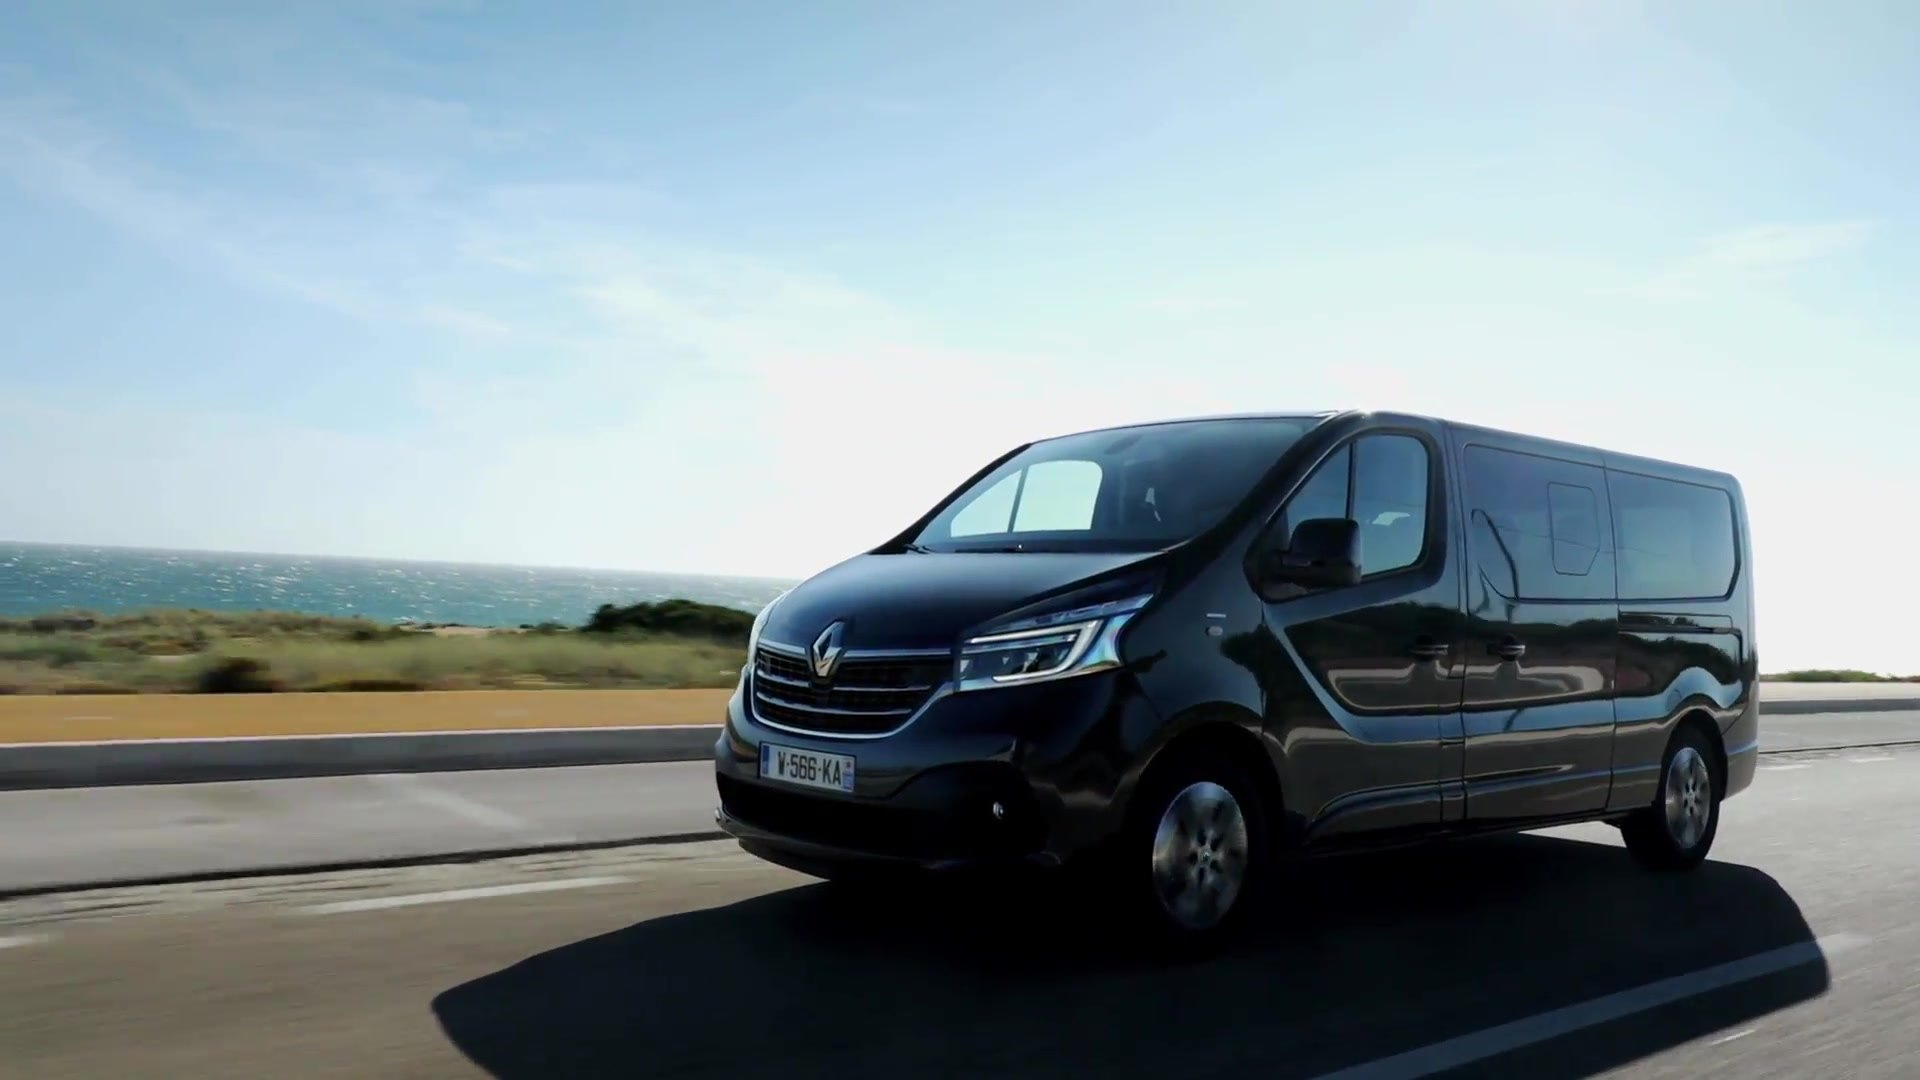 2019 New Renault Trafic Spaceclass Driving In Portugal